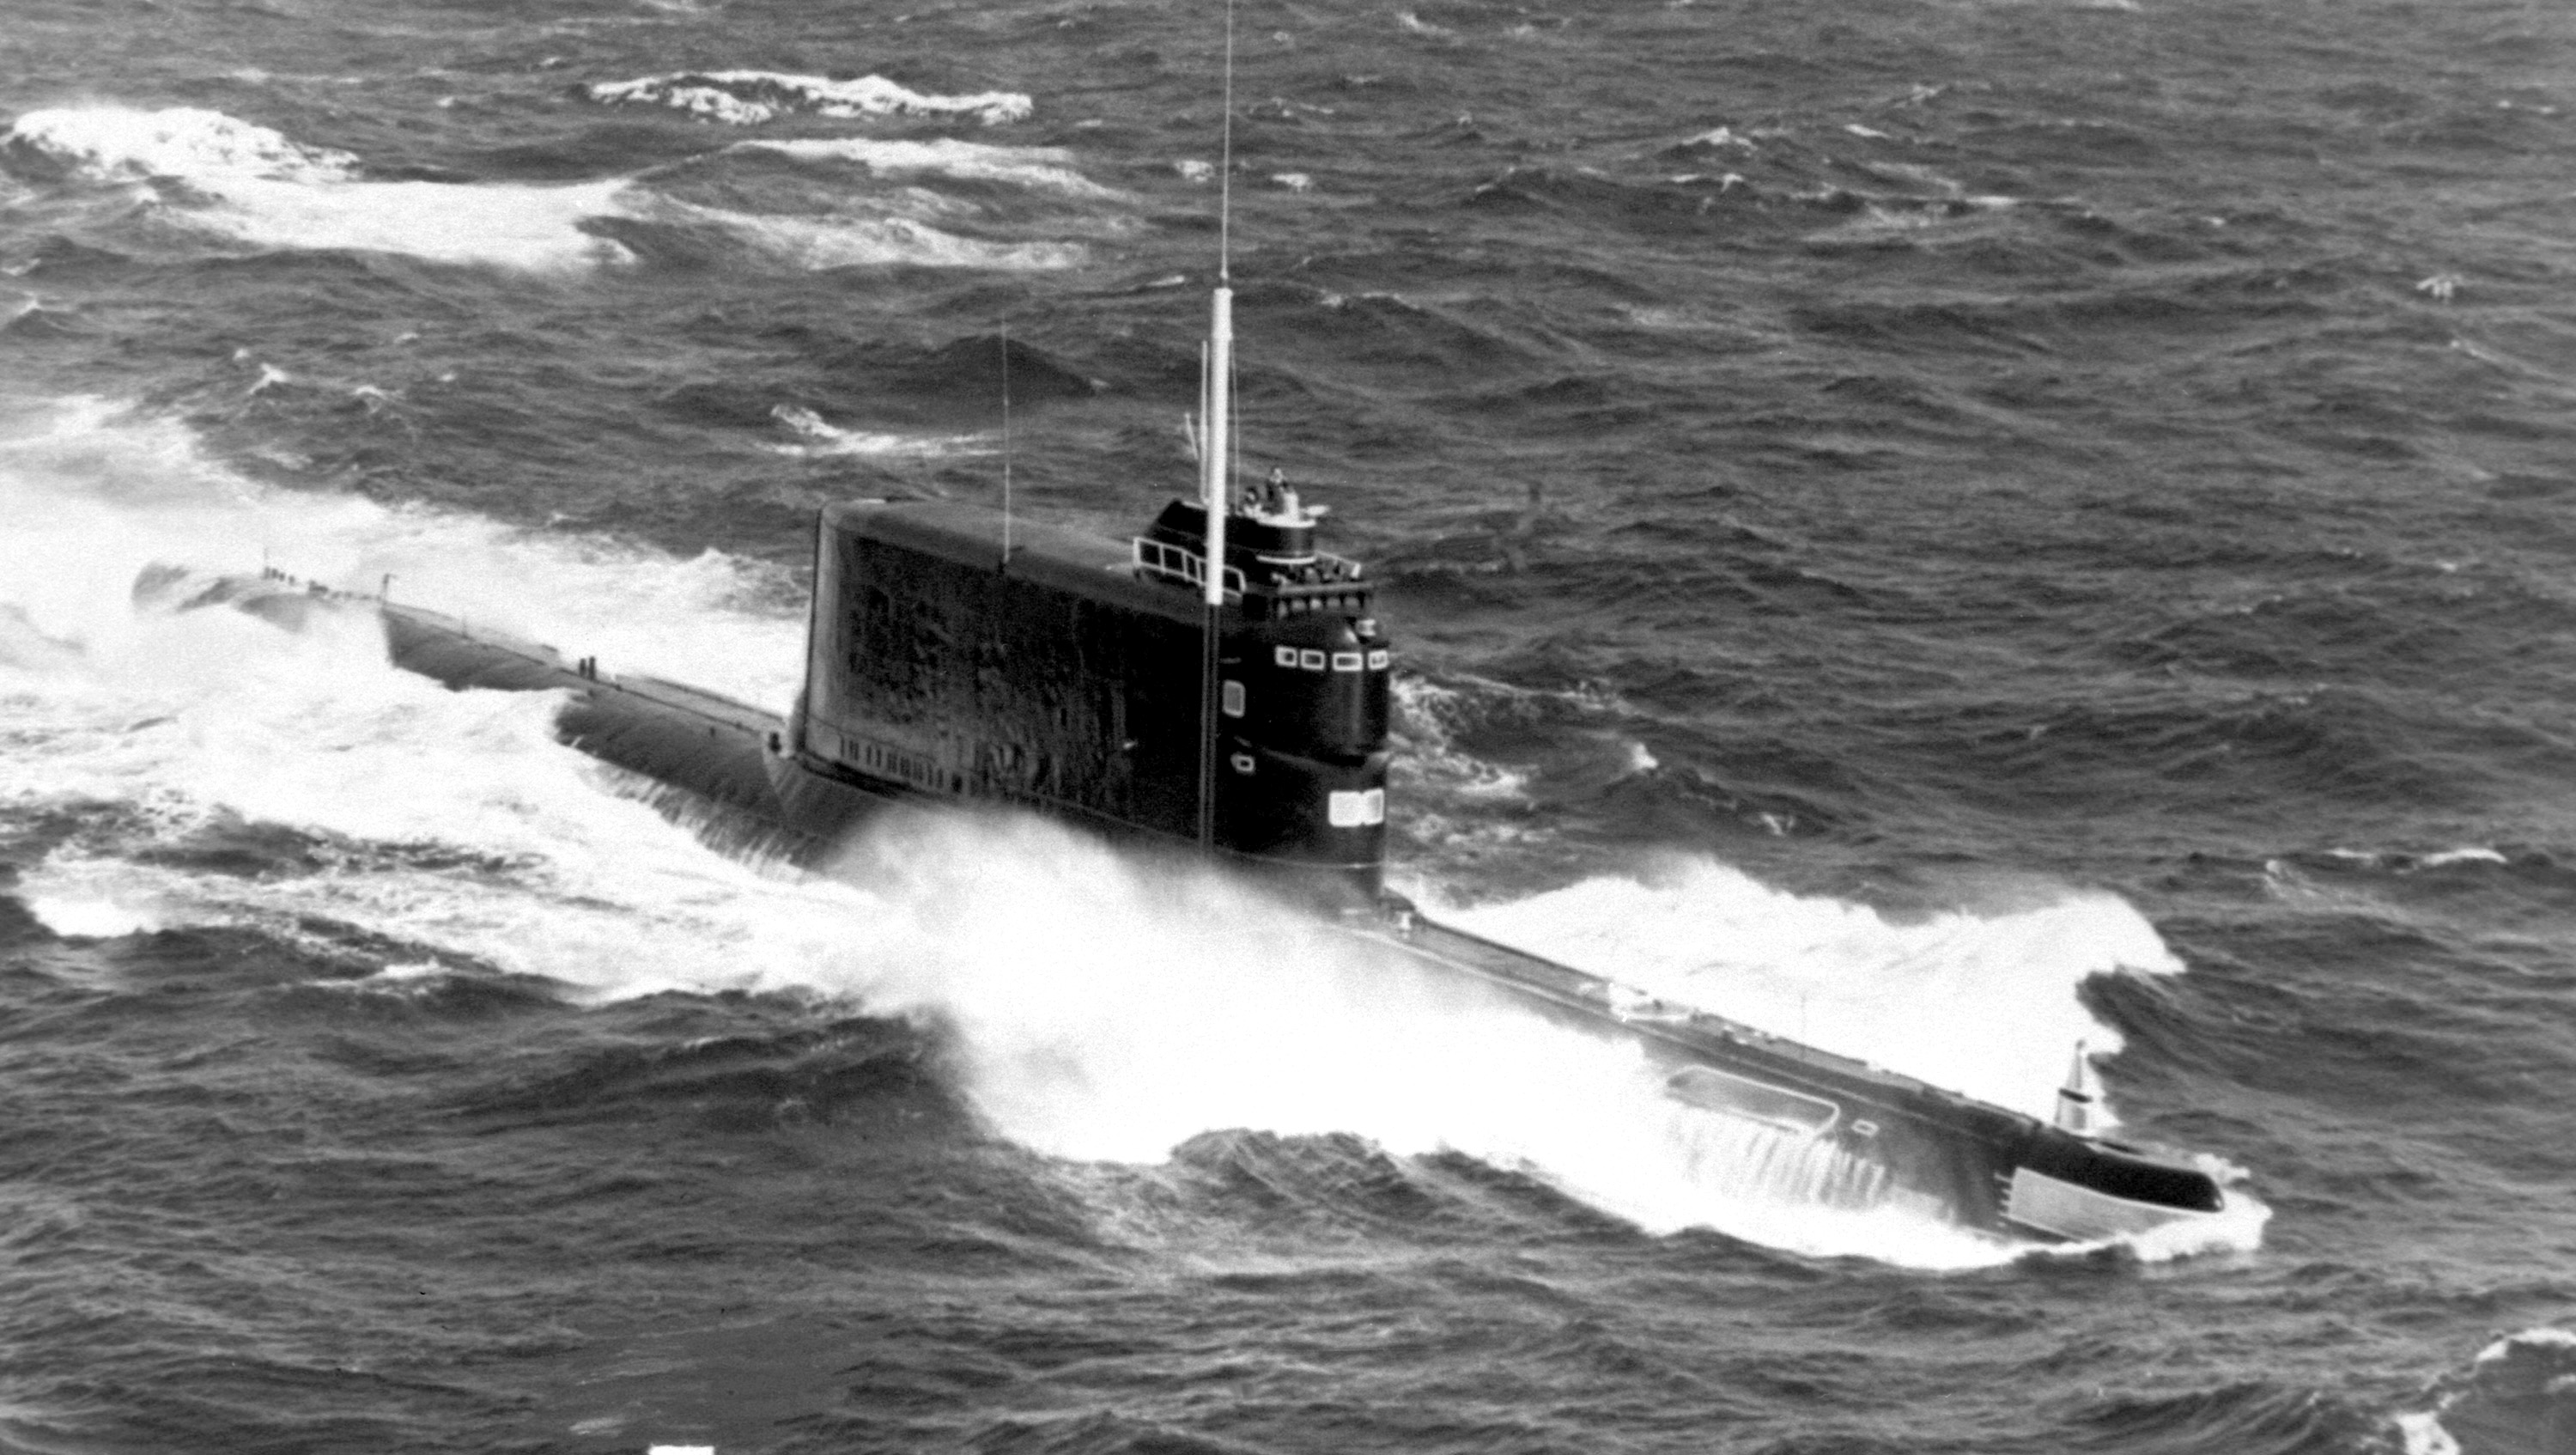 A Soviet Golf II class ballistic missile submarine underway in 1985. North Korea is reportedly building its own sea-based nuclear deterrent based on the Golf II design. DoD Photo